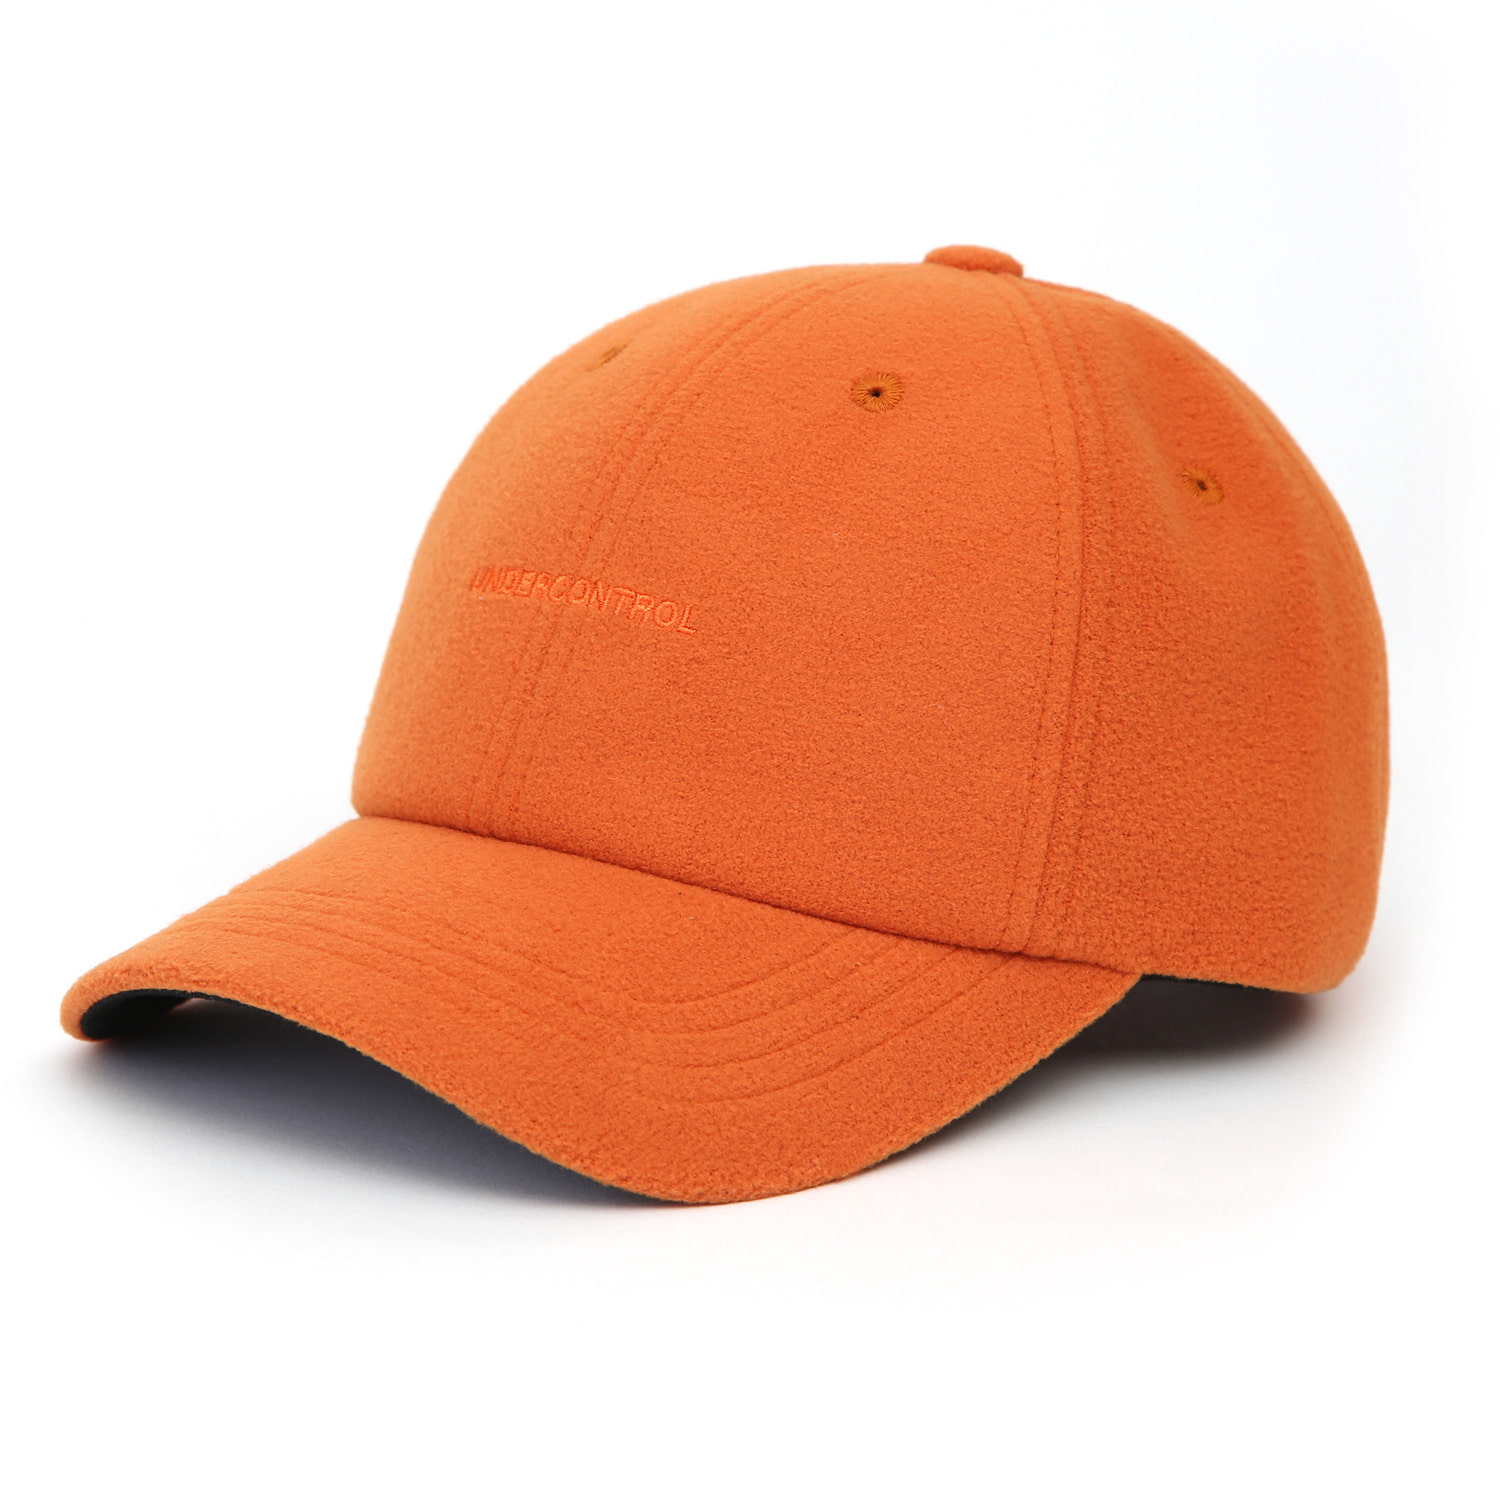 [09월 27일 예약발송] U LOGO / POLAR FLEECE / SUNNY ORANGE